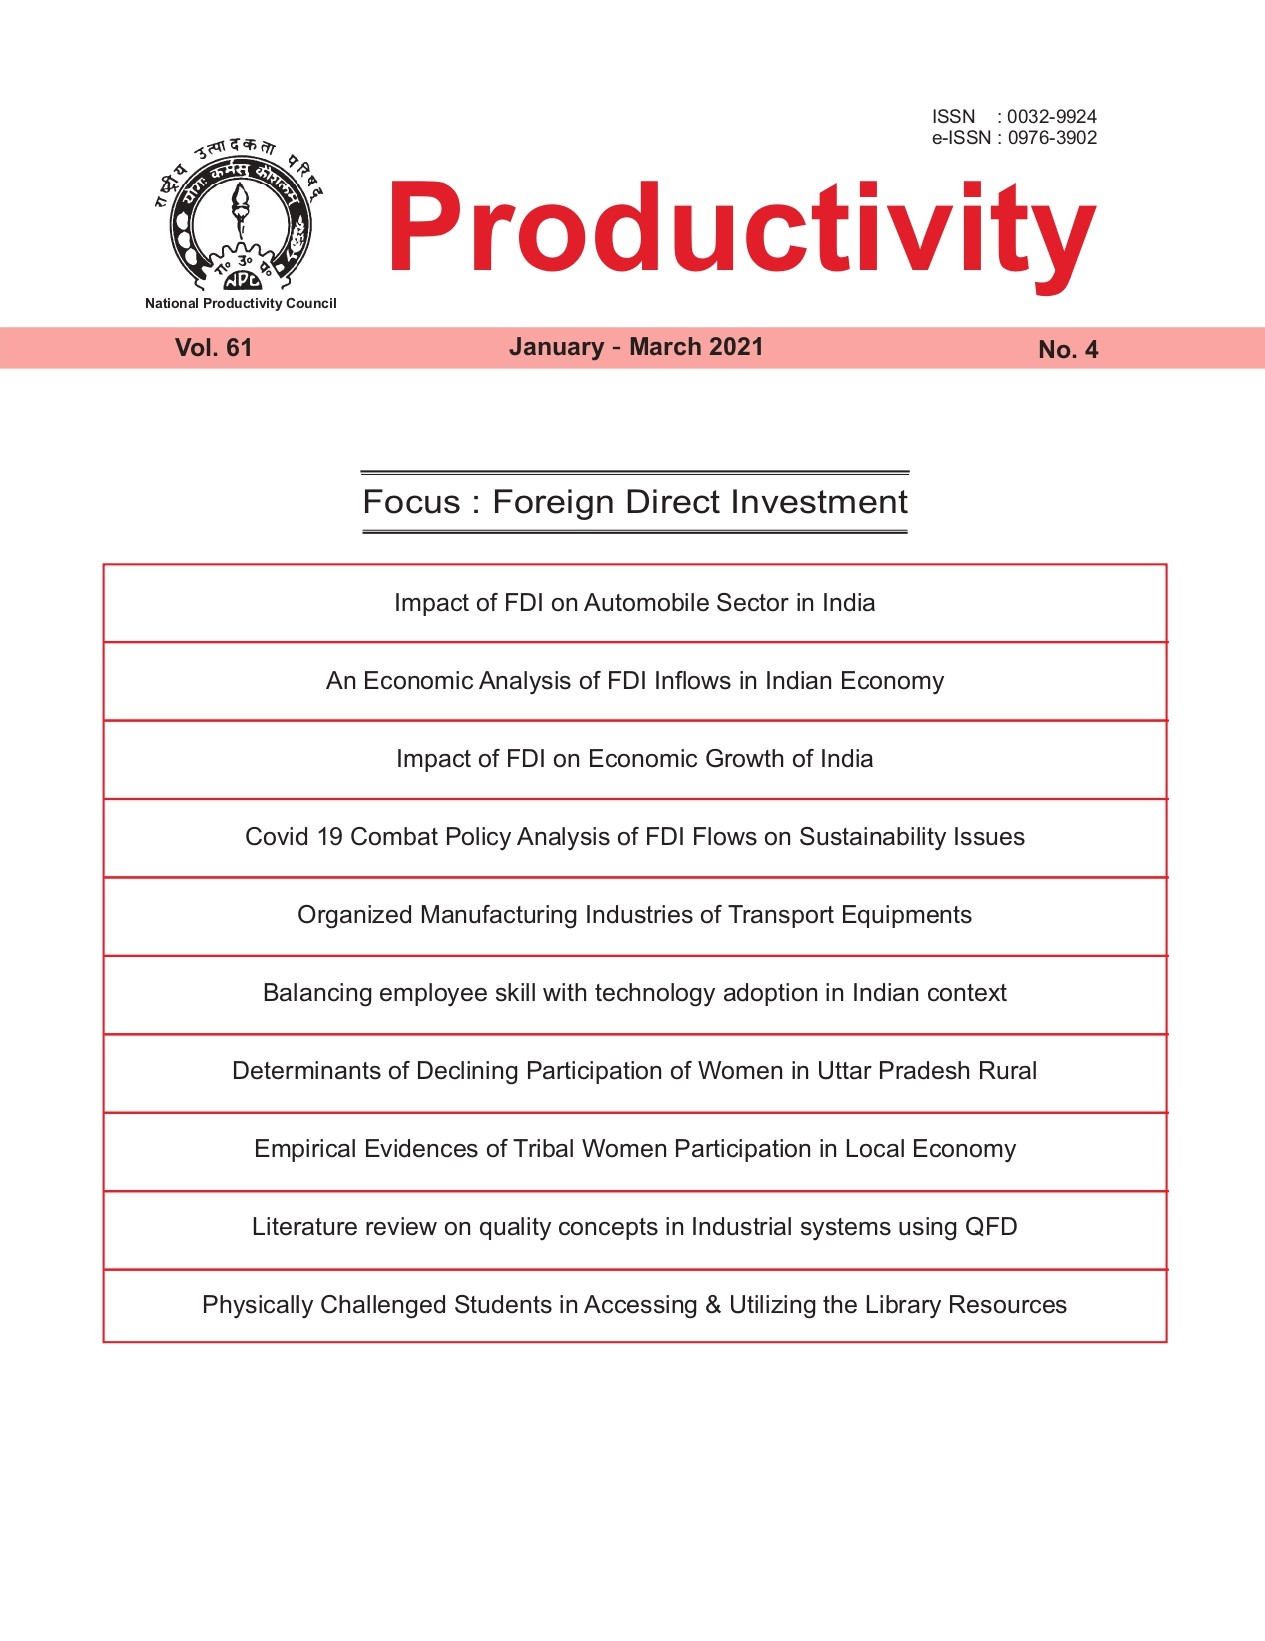 Productivity : A Quarterly Journal of The National Productivity Council - Quarterly - Volume: 61 (2020-21)